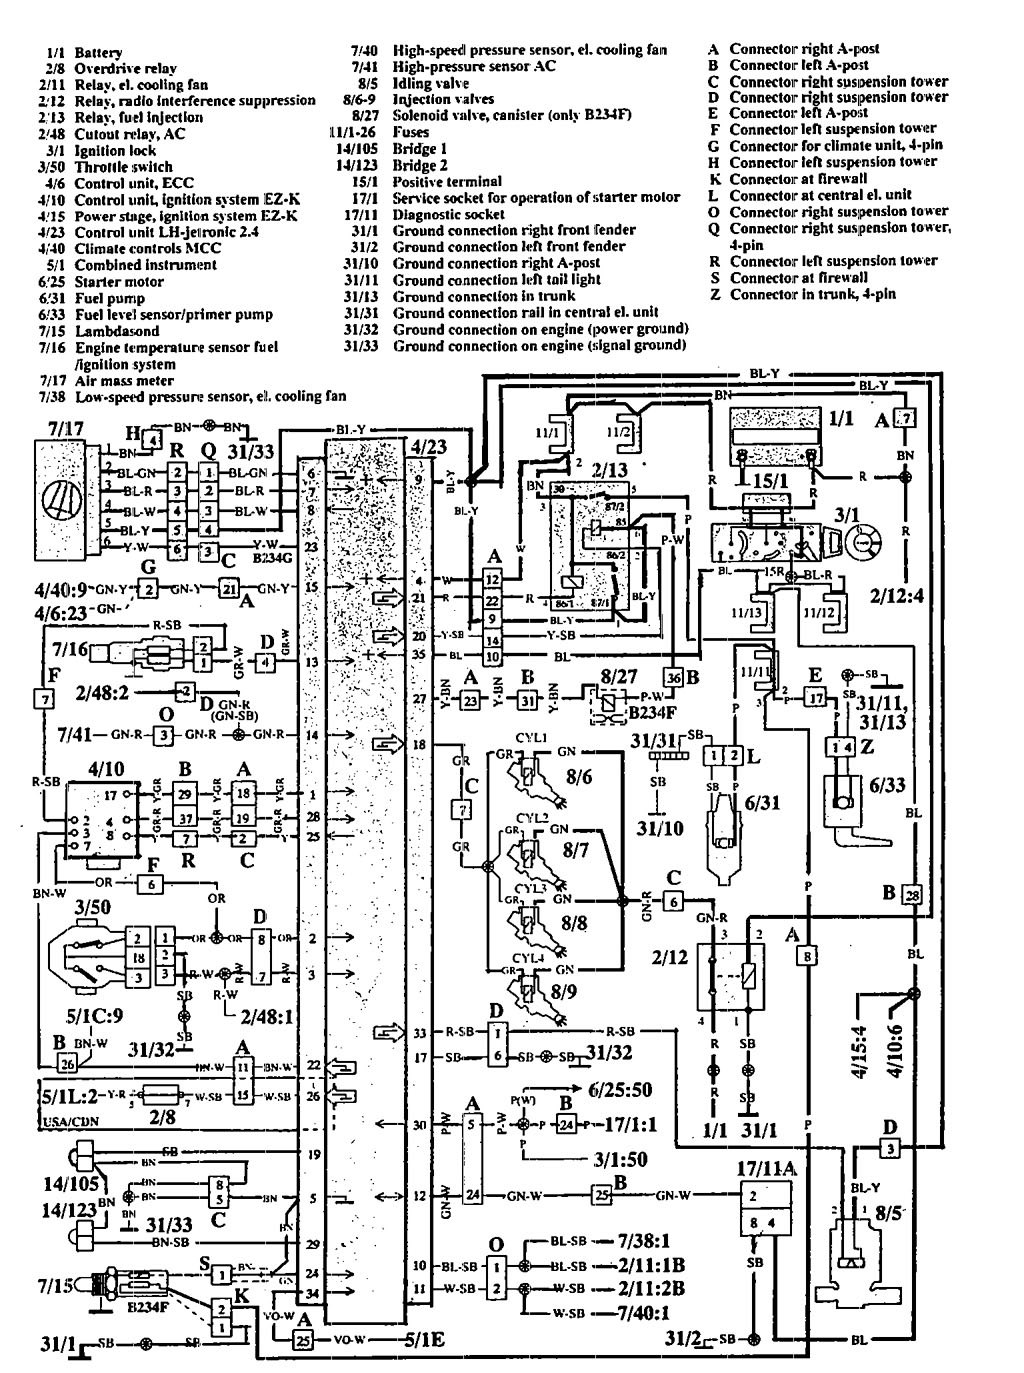 Volvo Wiring Diagram Getting Ready With Harness 940 1997 29 Images V40